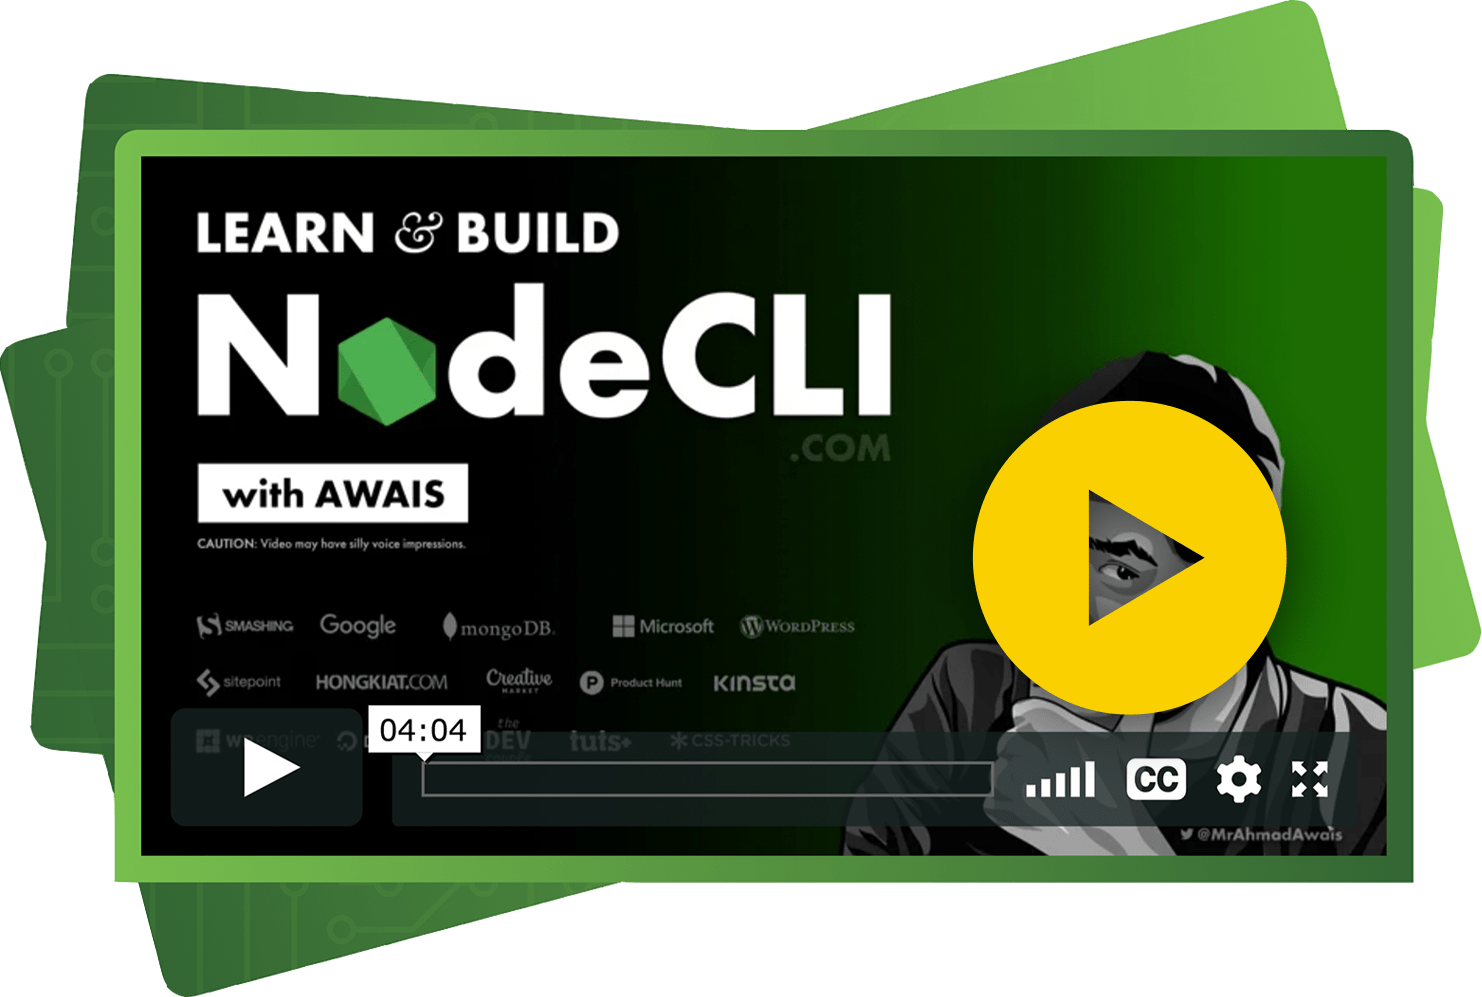 NodeCLI.com Introductory Video